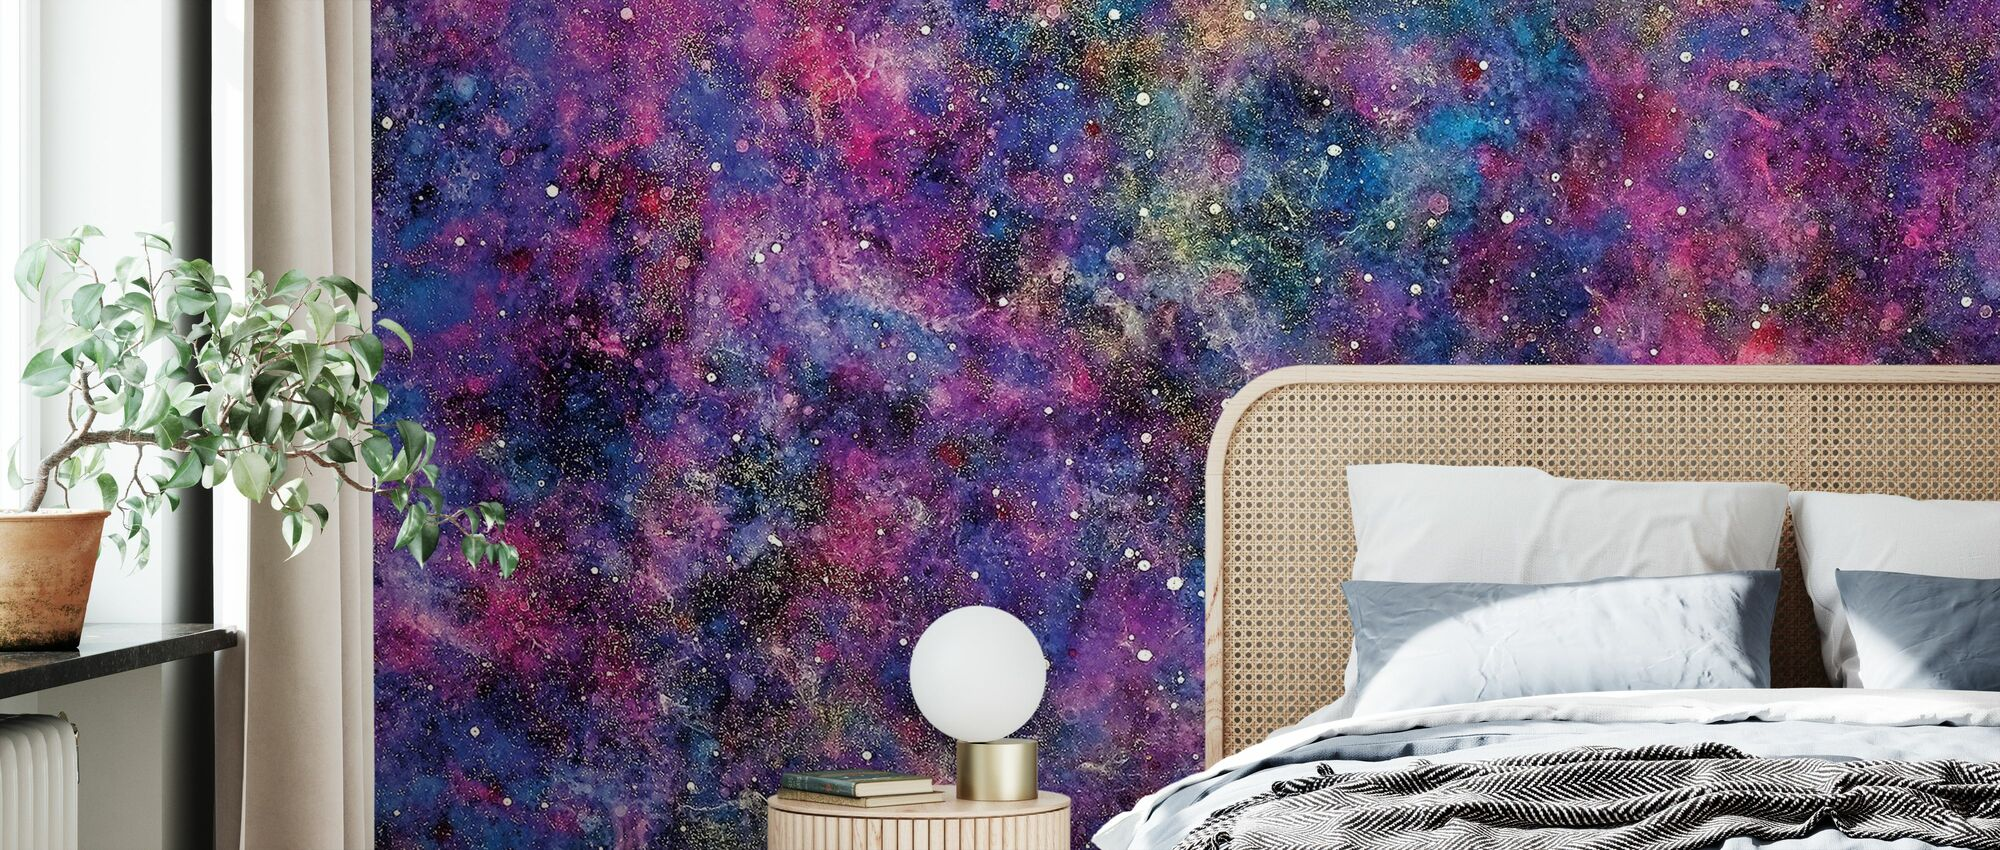 Thousand Stars - Wallpaper - Bedroom